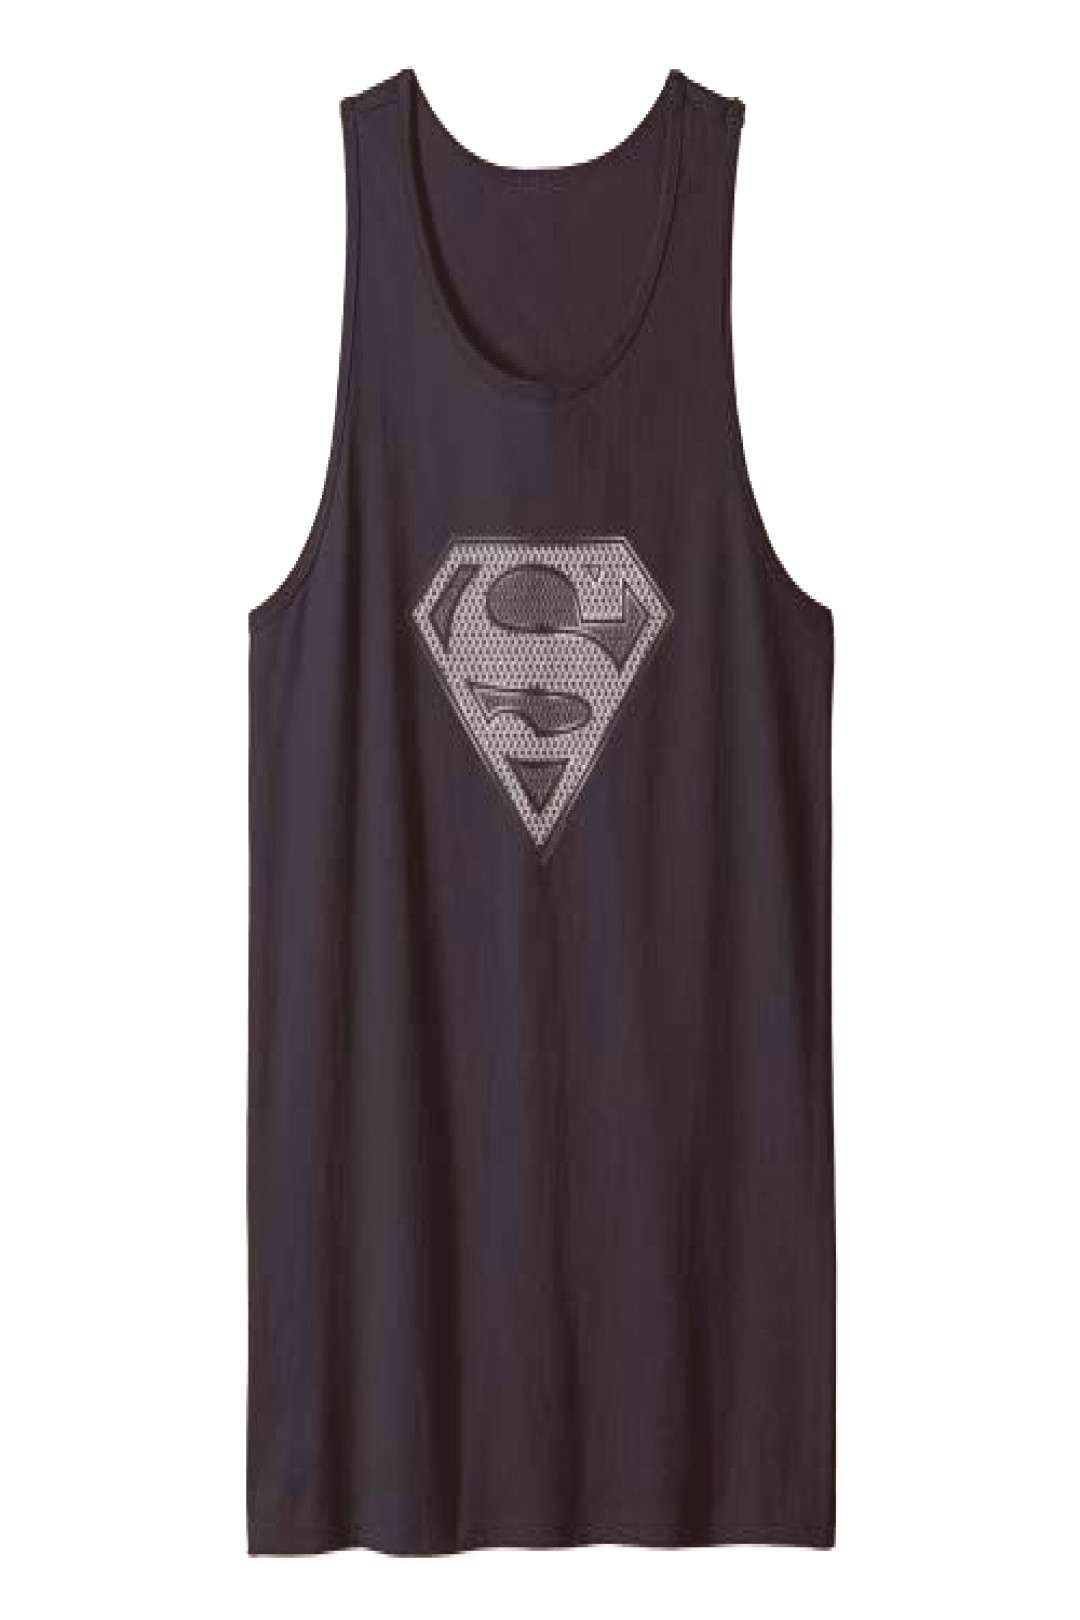 Superman Chainmail Tank Top -You can find Superman and more on our website.Superman Chainmail Tank